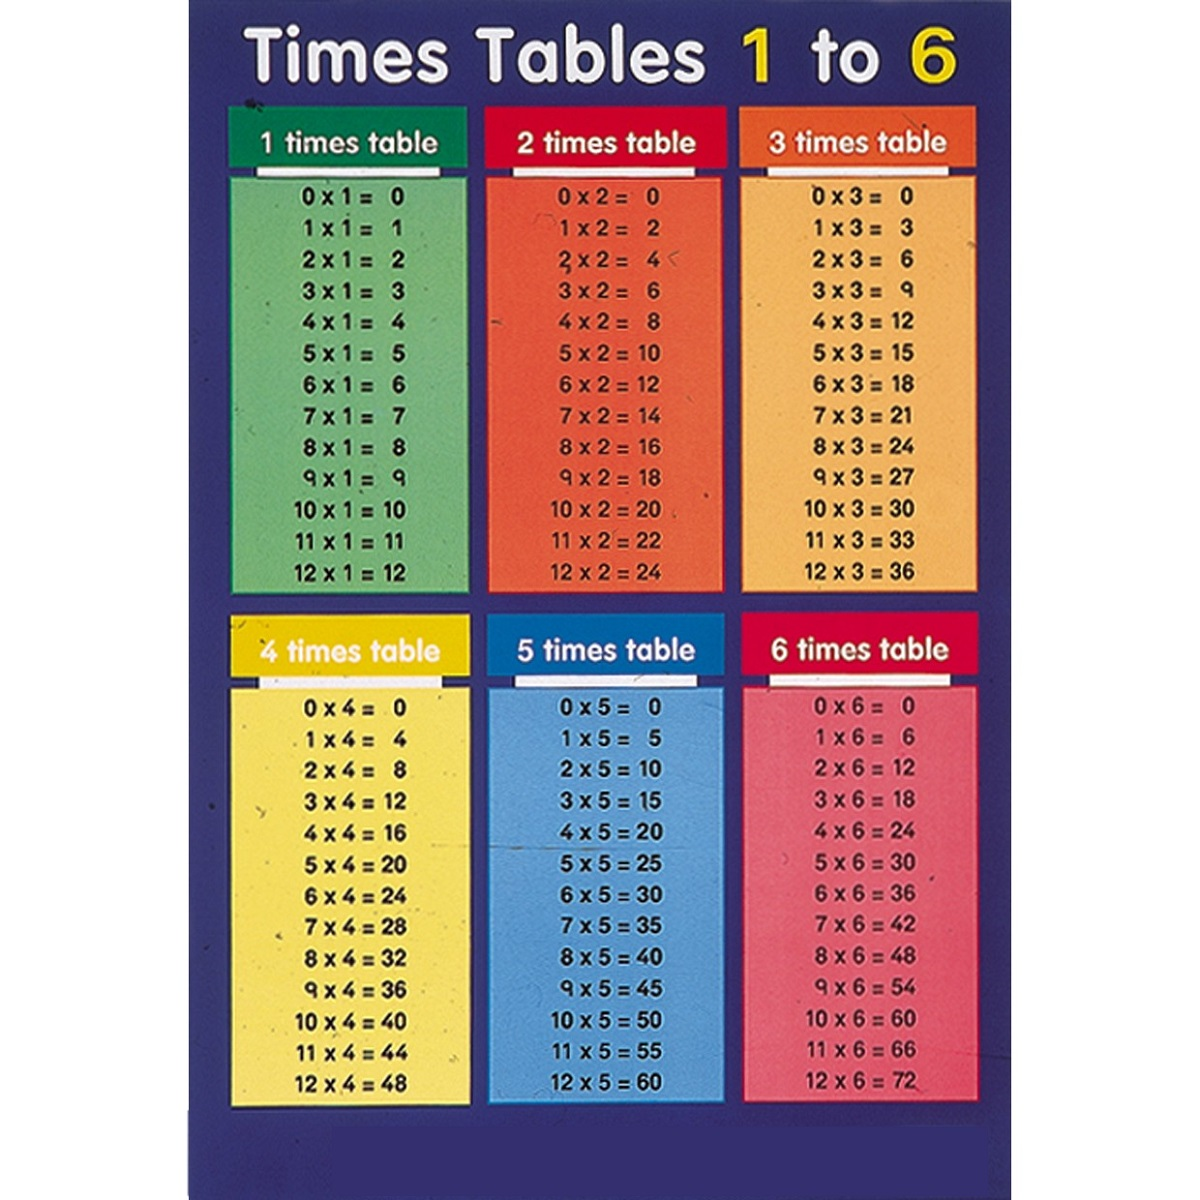 Pictures of Times Tables 1 to 6